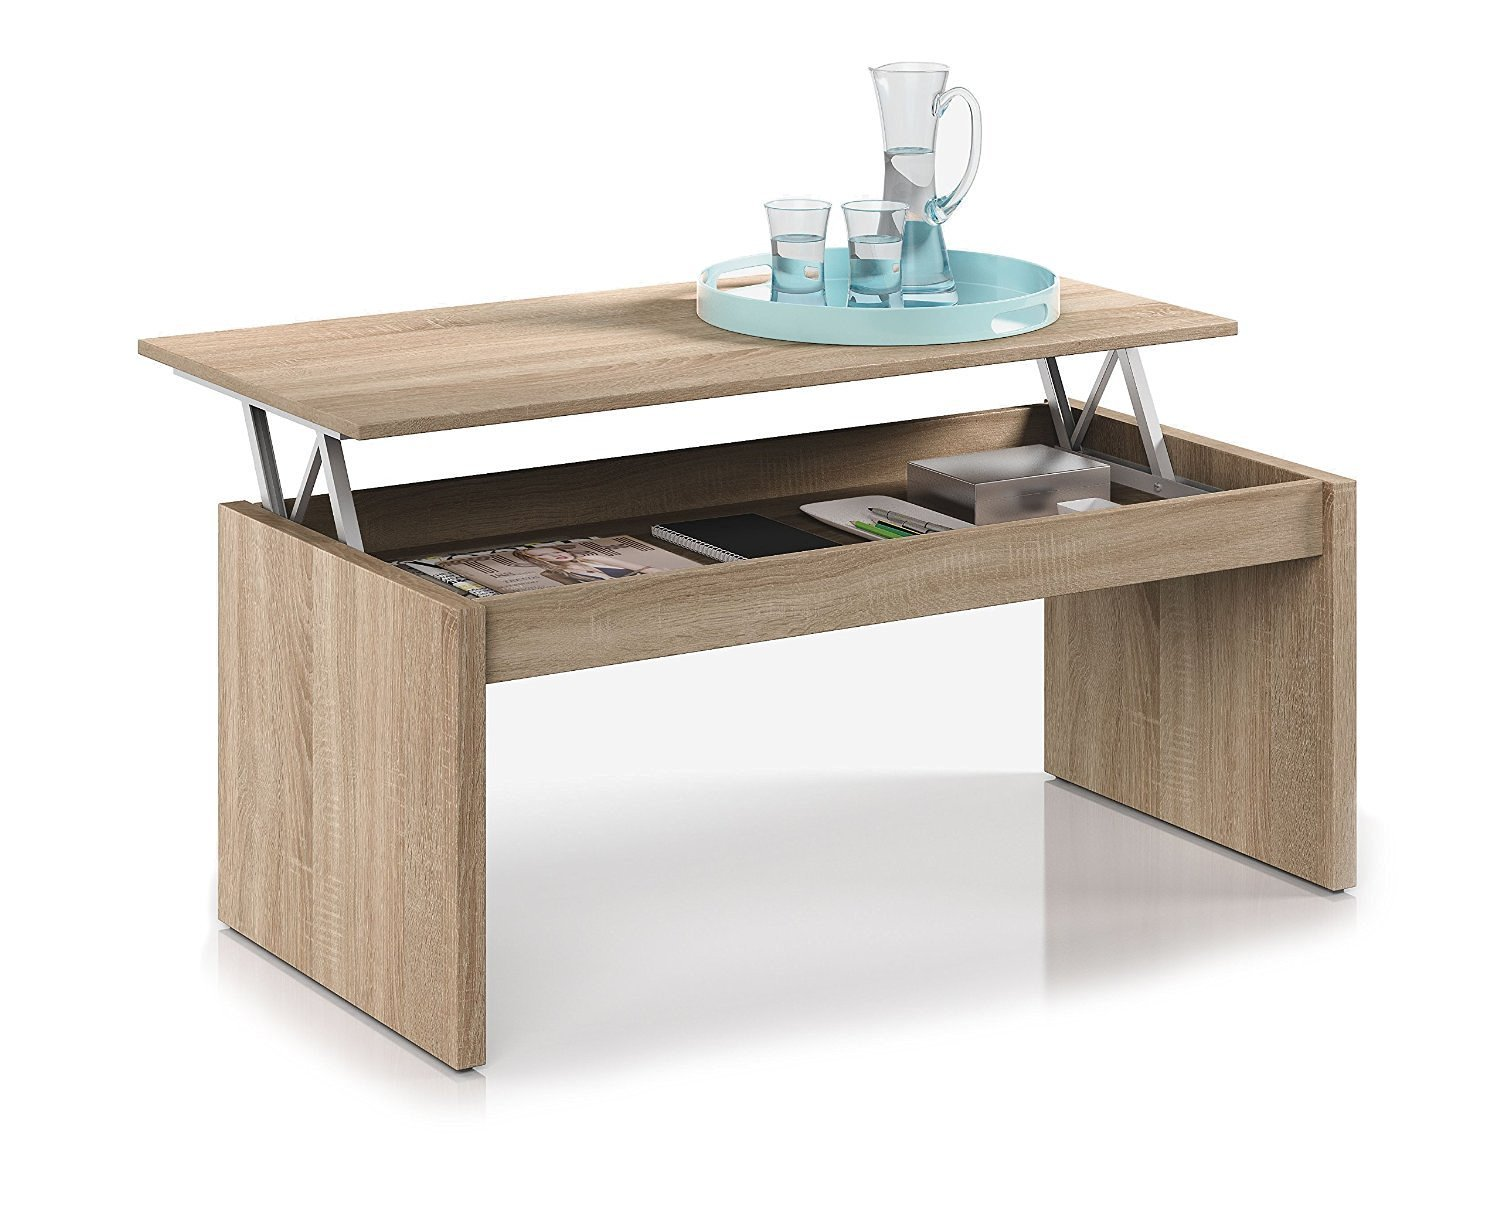 Habitdesign F Table Basse Chªne naturel Avec Plateau